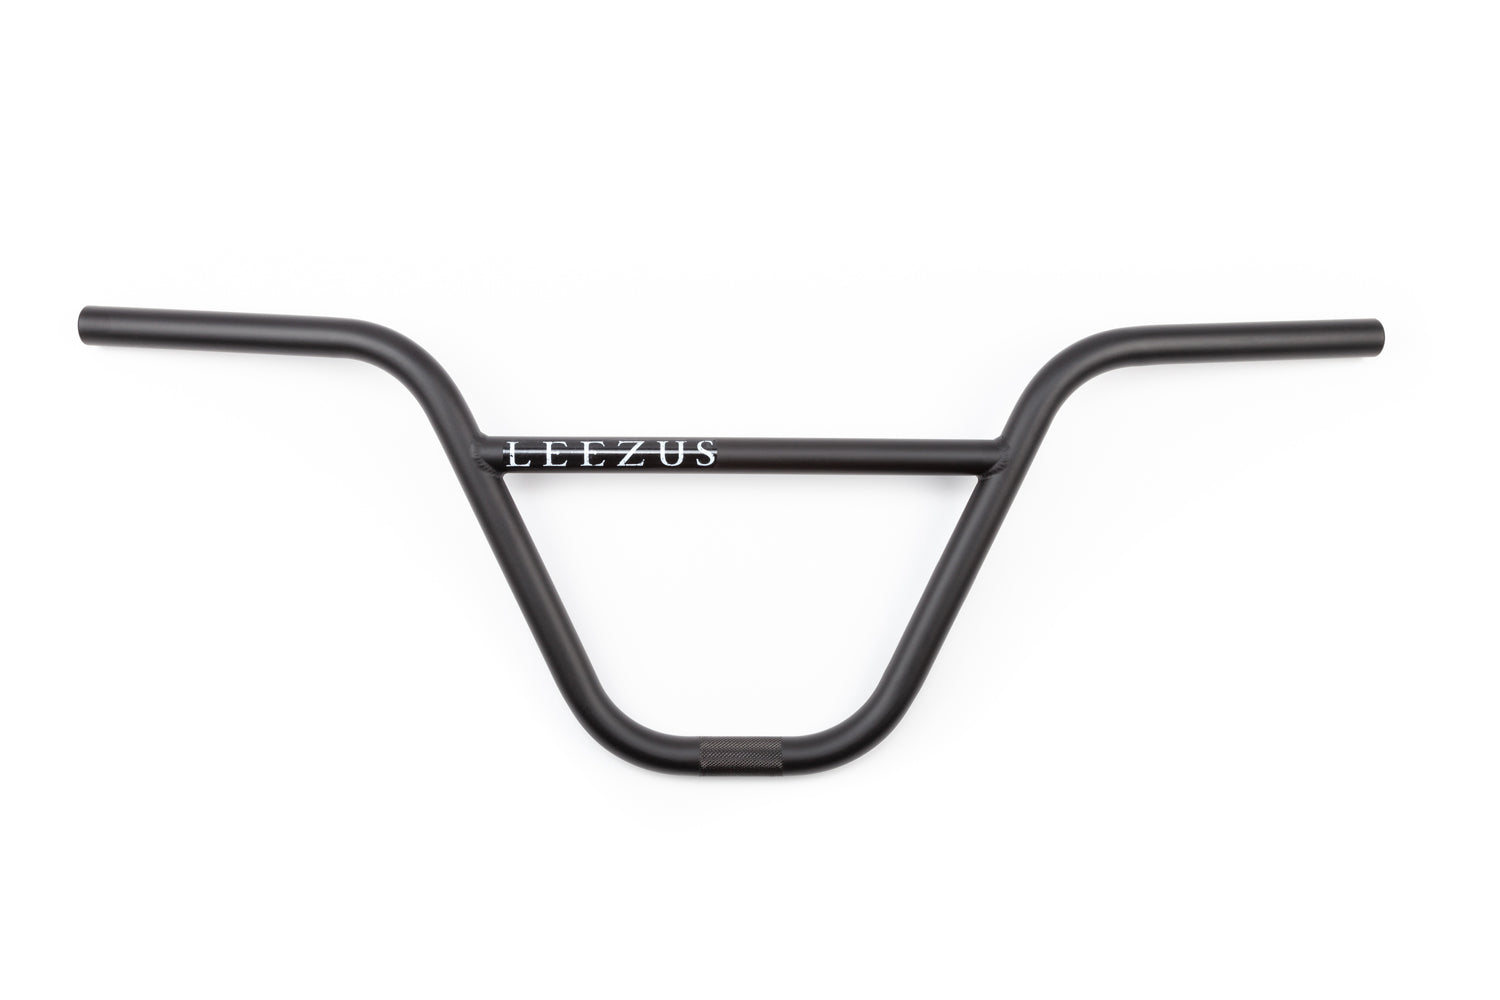 "BSD Leezus Bars - Flat Black - 7/8"" clamp"